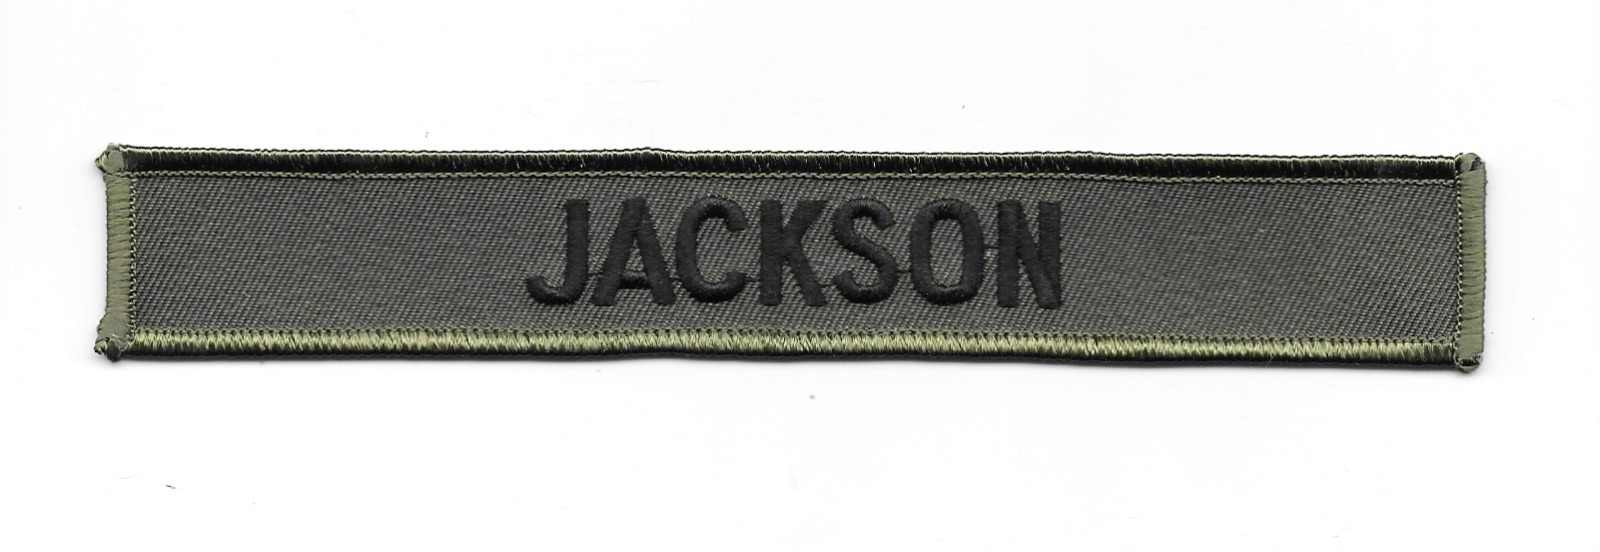 Stargate SG-1 TV Series Jackson Uniform Name Chest Embroidered Patch NEW UNUSED